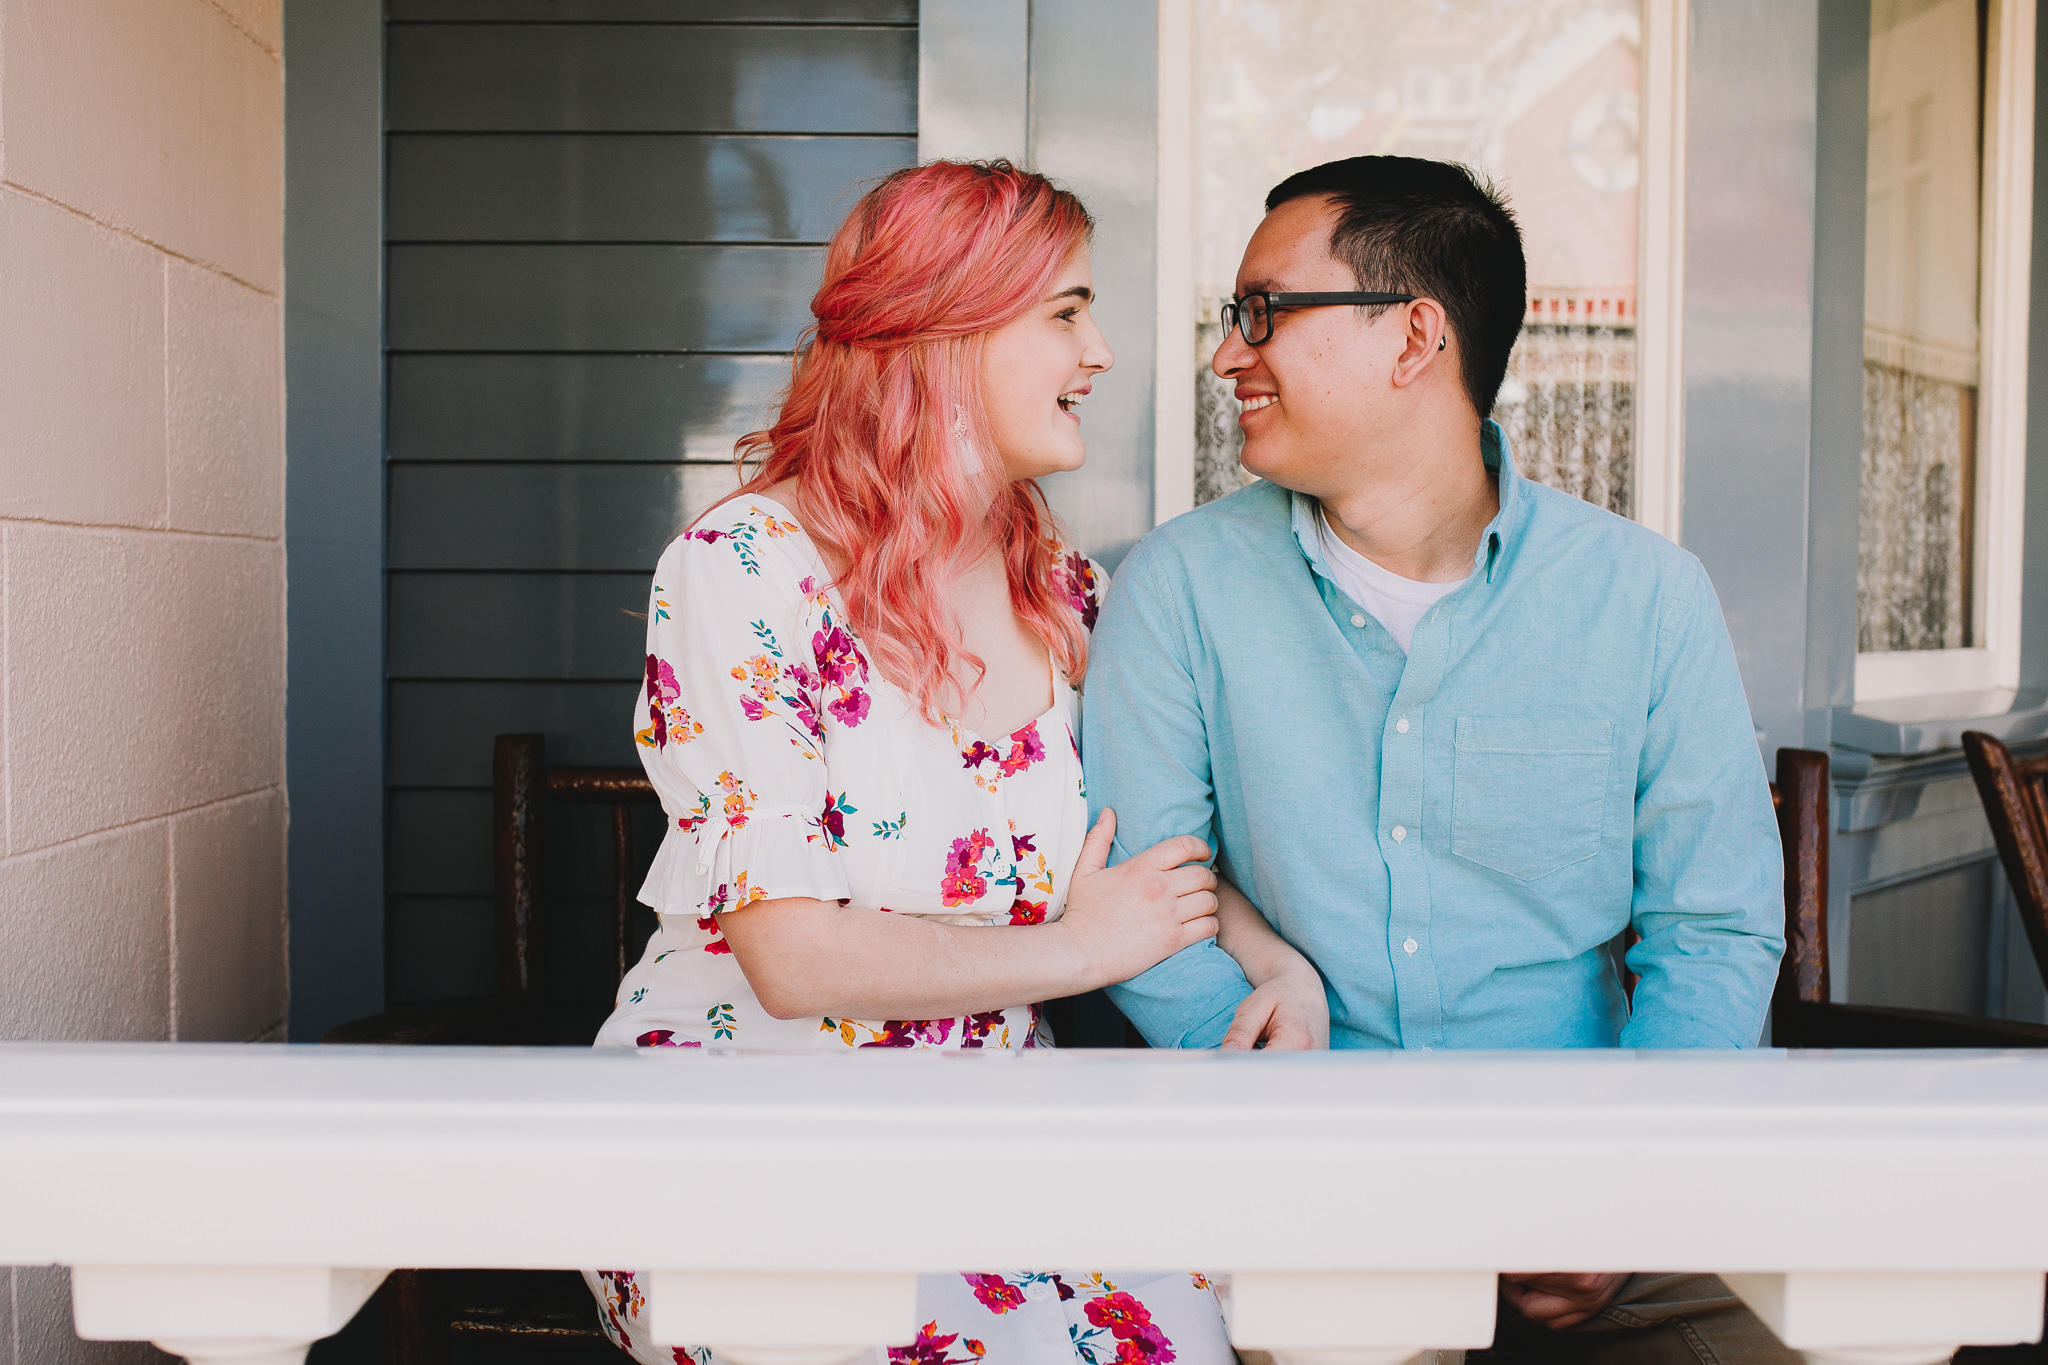 Archer Inspired Photography Disneyland Engagement Wedding Session Southern California Kayla and Kevin Lifestyle Documentary-133.jpg